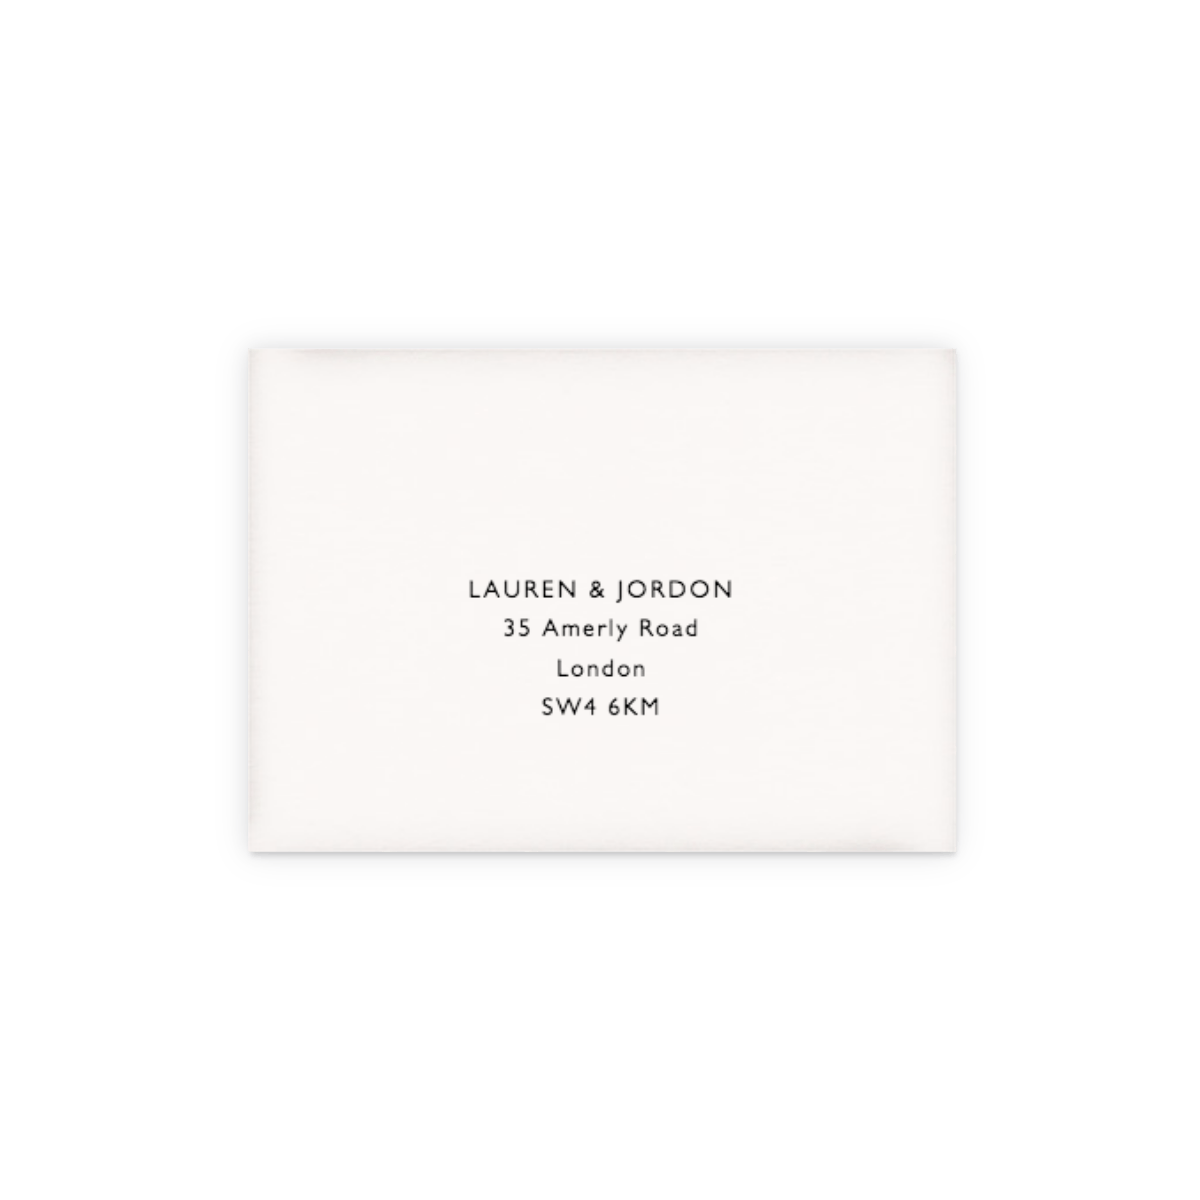 Https%3a%2f%2fwww.papier.com%2fproduct image%2f68601%2f12%2fthe wedding of calligraphy 16265 rsvp envelope 1552573833.png?ixlib=rb 1.1